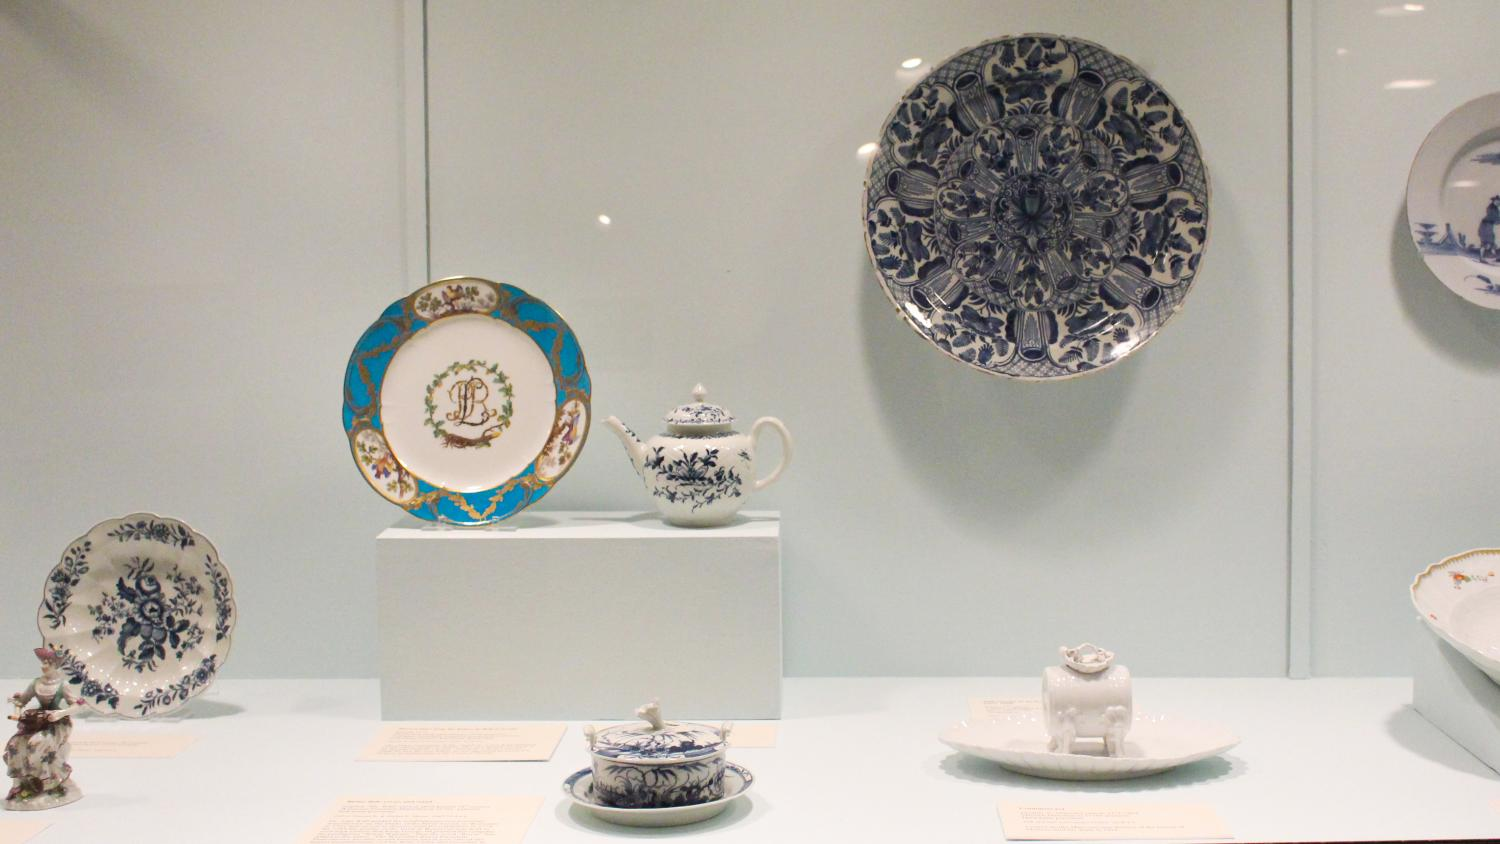 Moore Gallery of Decorative Arts, 2014. Photo by Julia Nucci Kelly